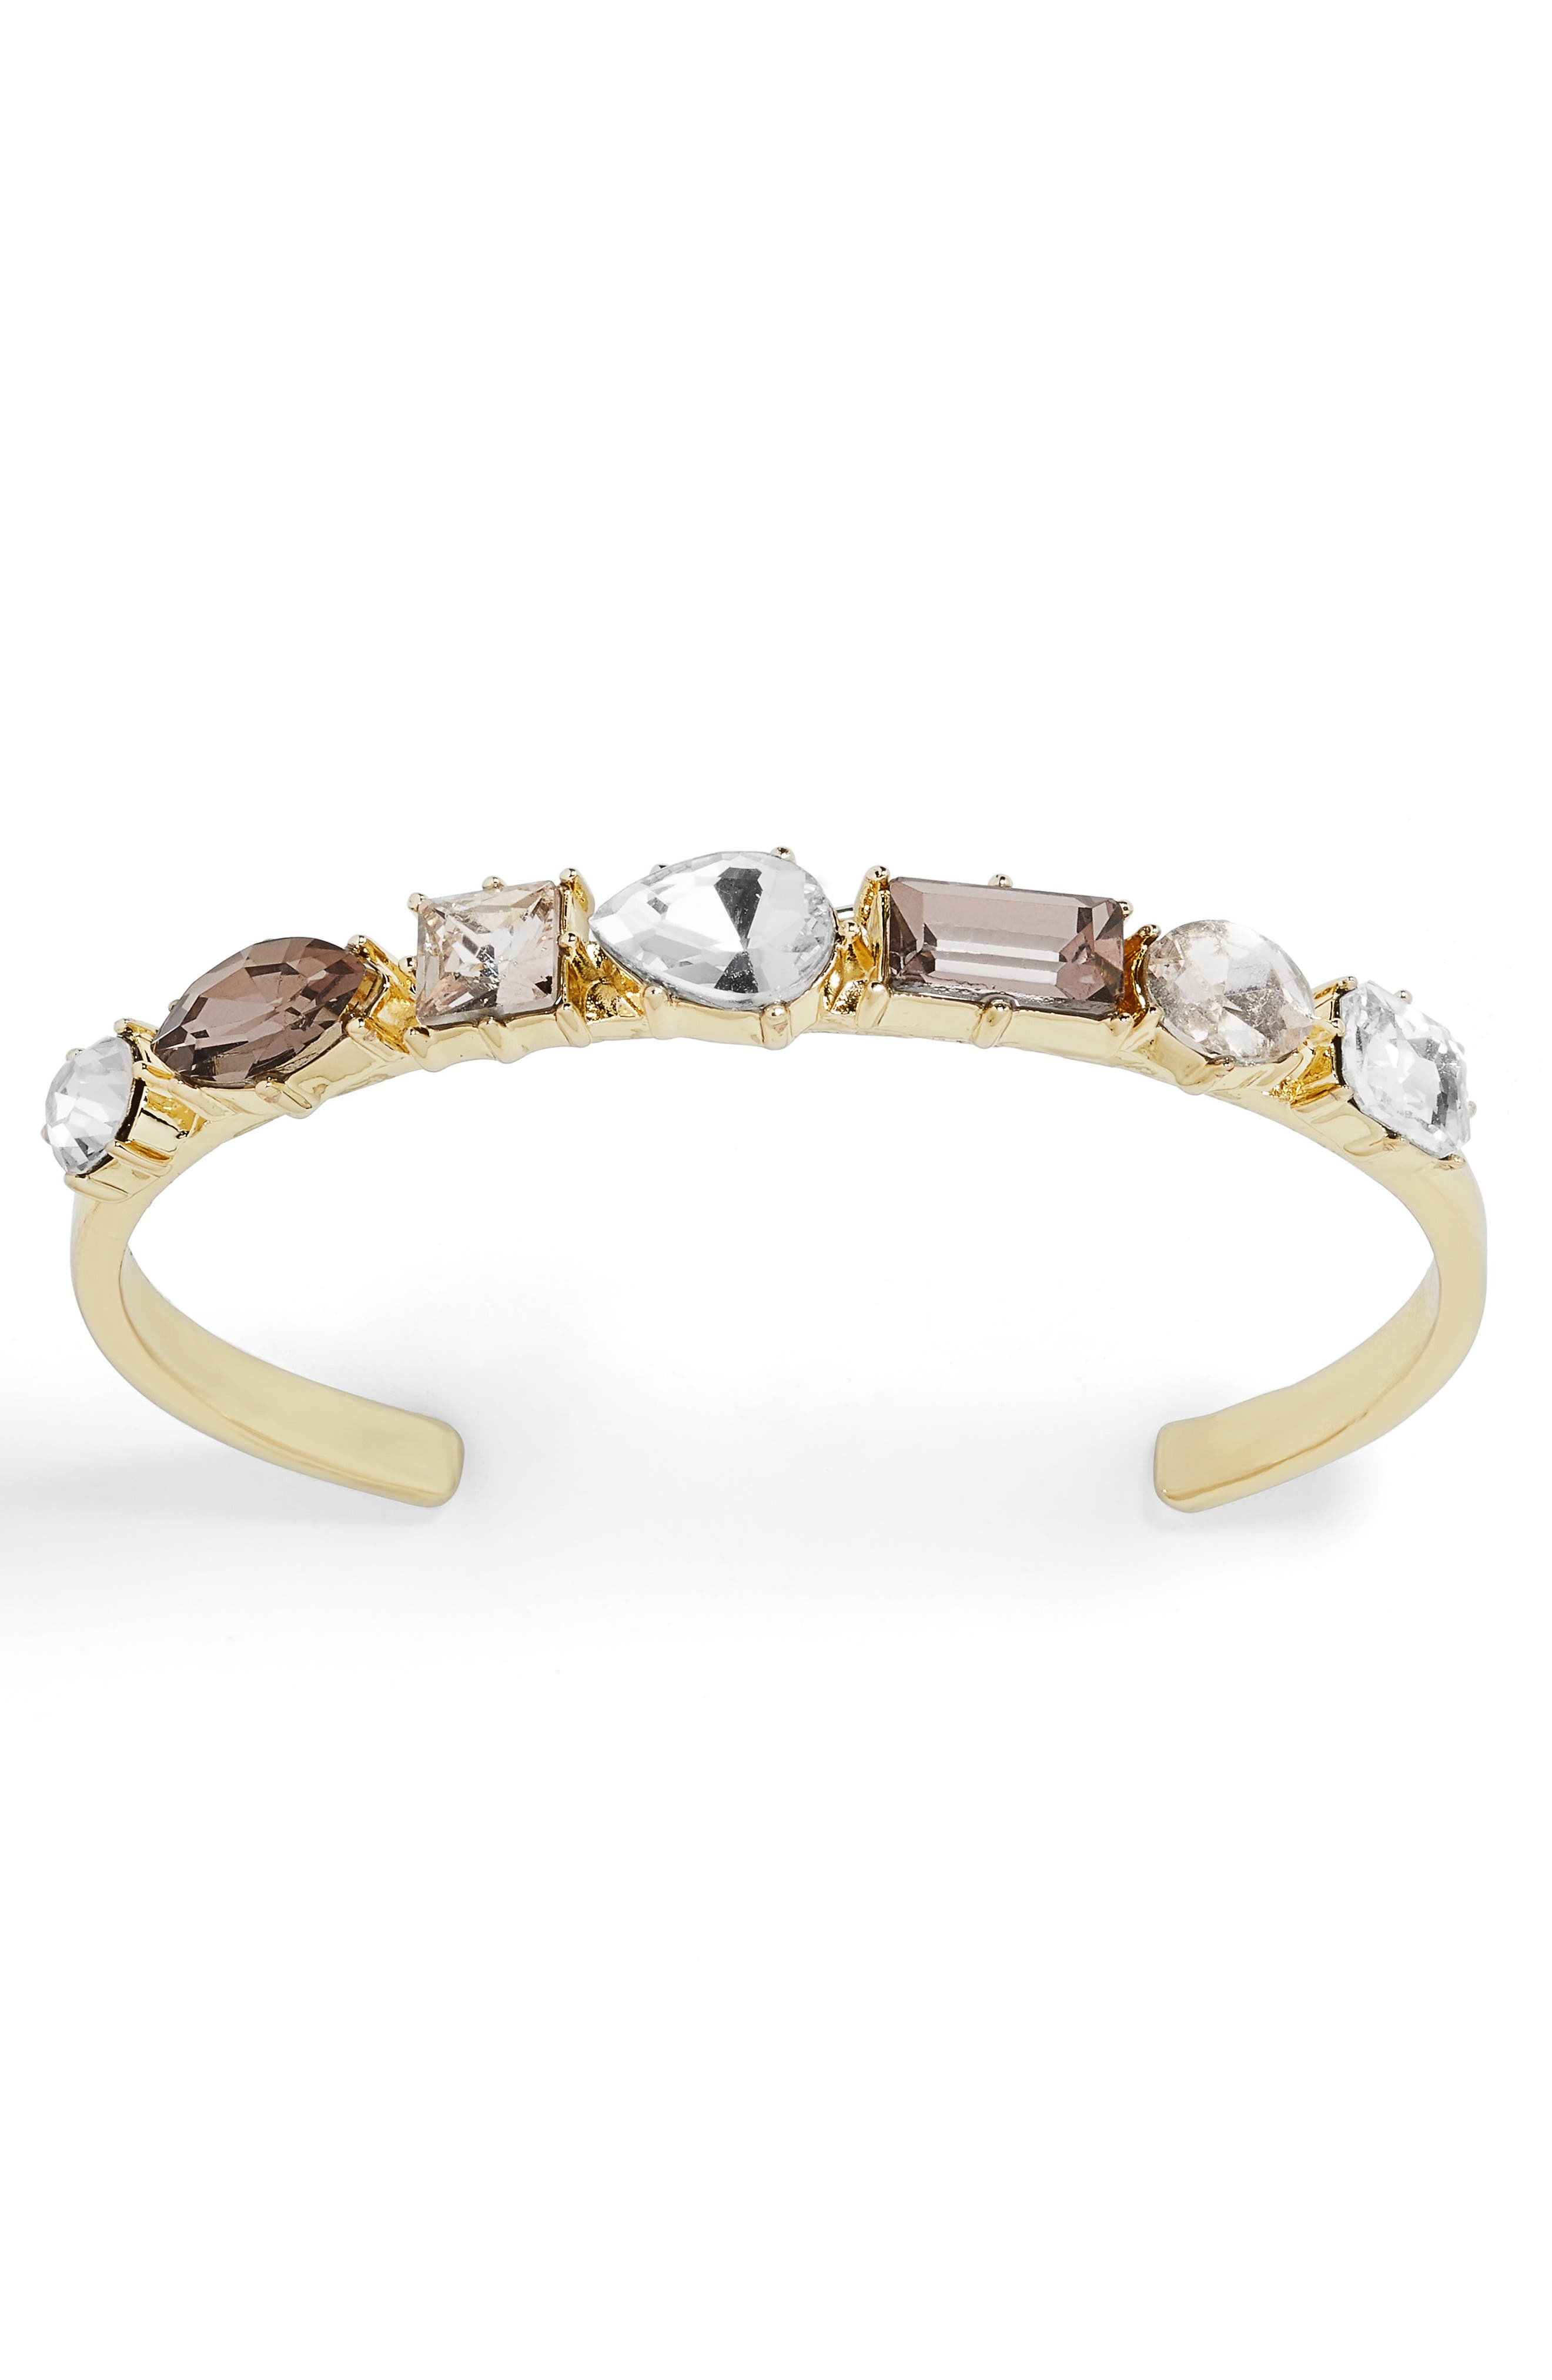 x Micaela Erlanger Coffee Date Cuff,                             Main thumbnail 1, color,                             GREY/ GOLD